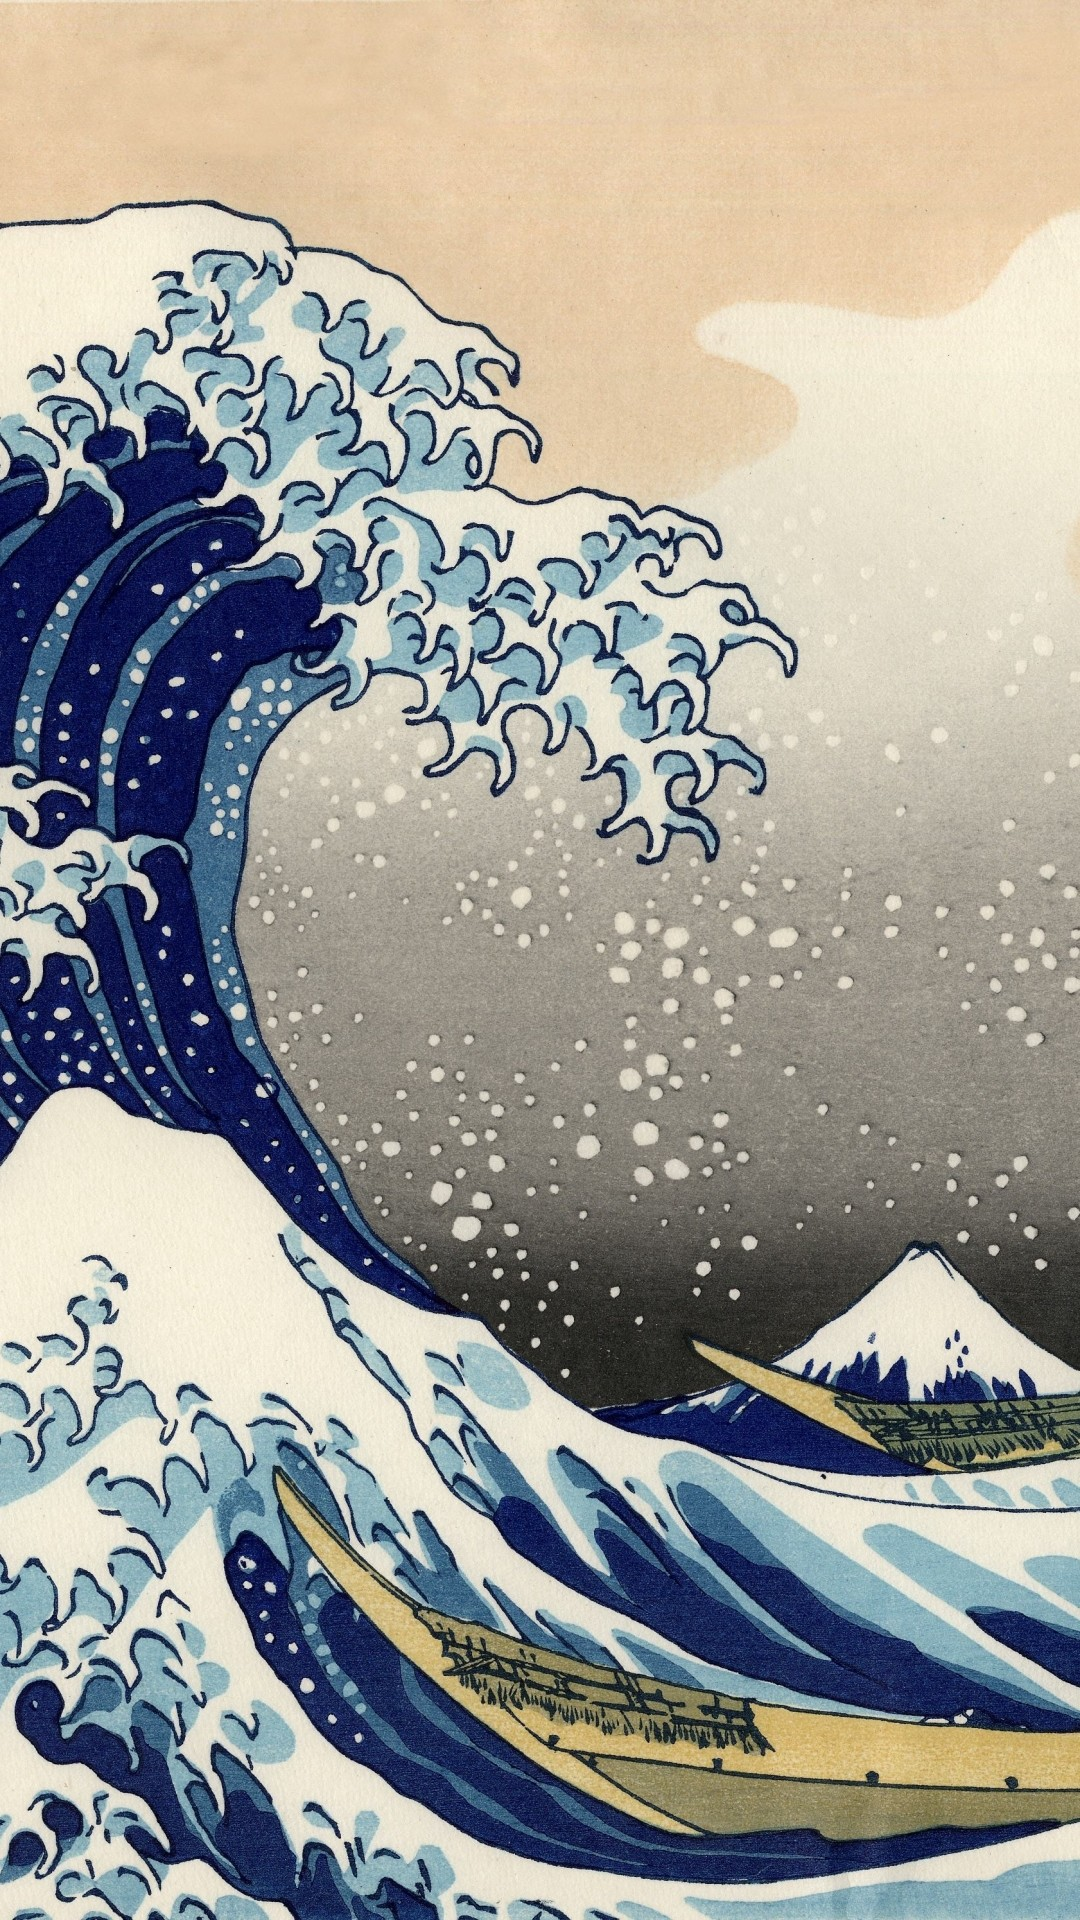 iPhone 5 – Artistic/The Great Wave Off Kanagawa – Wallpaper ID: 582819